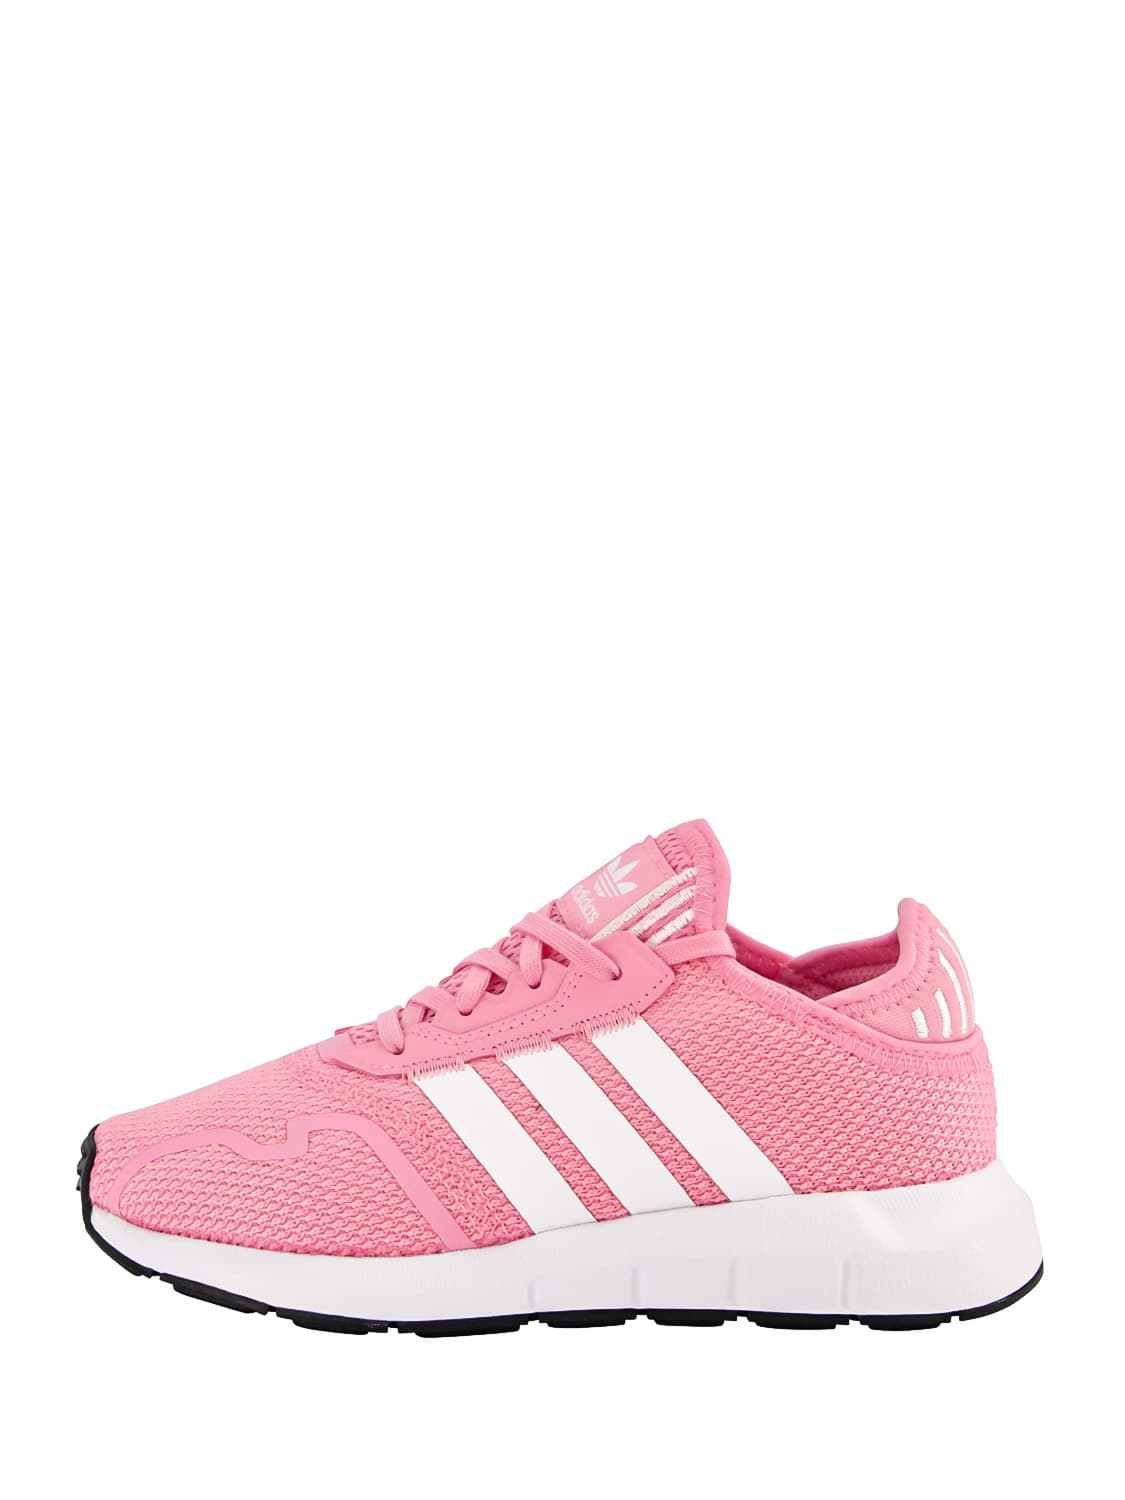 Adidas Originals KIDS SNEAKERS SWIFT RUN X C FOR FOR BOYS AND FOR GIRLS